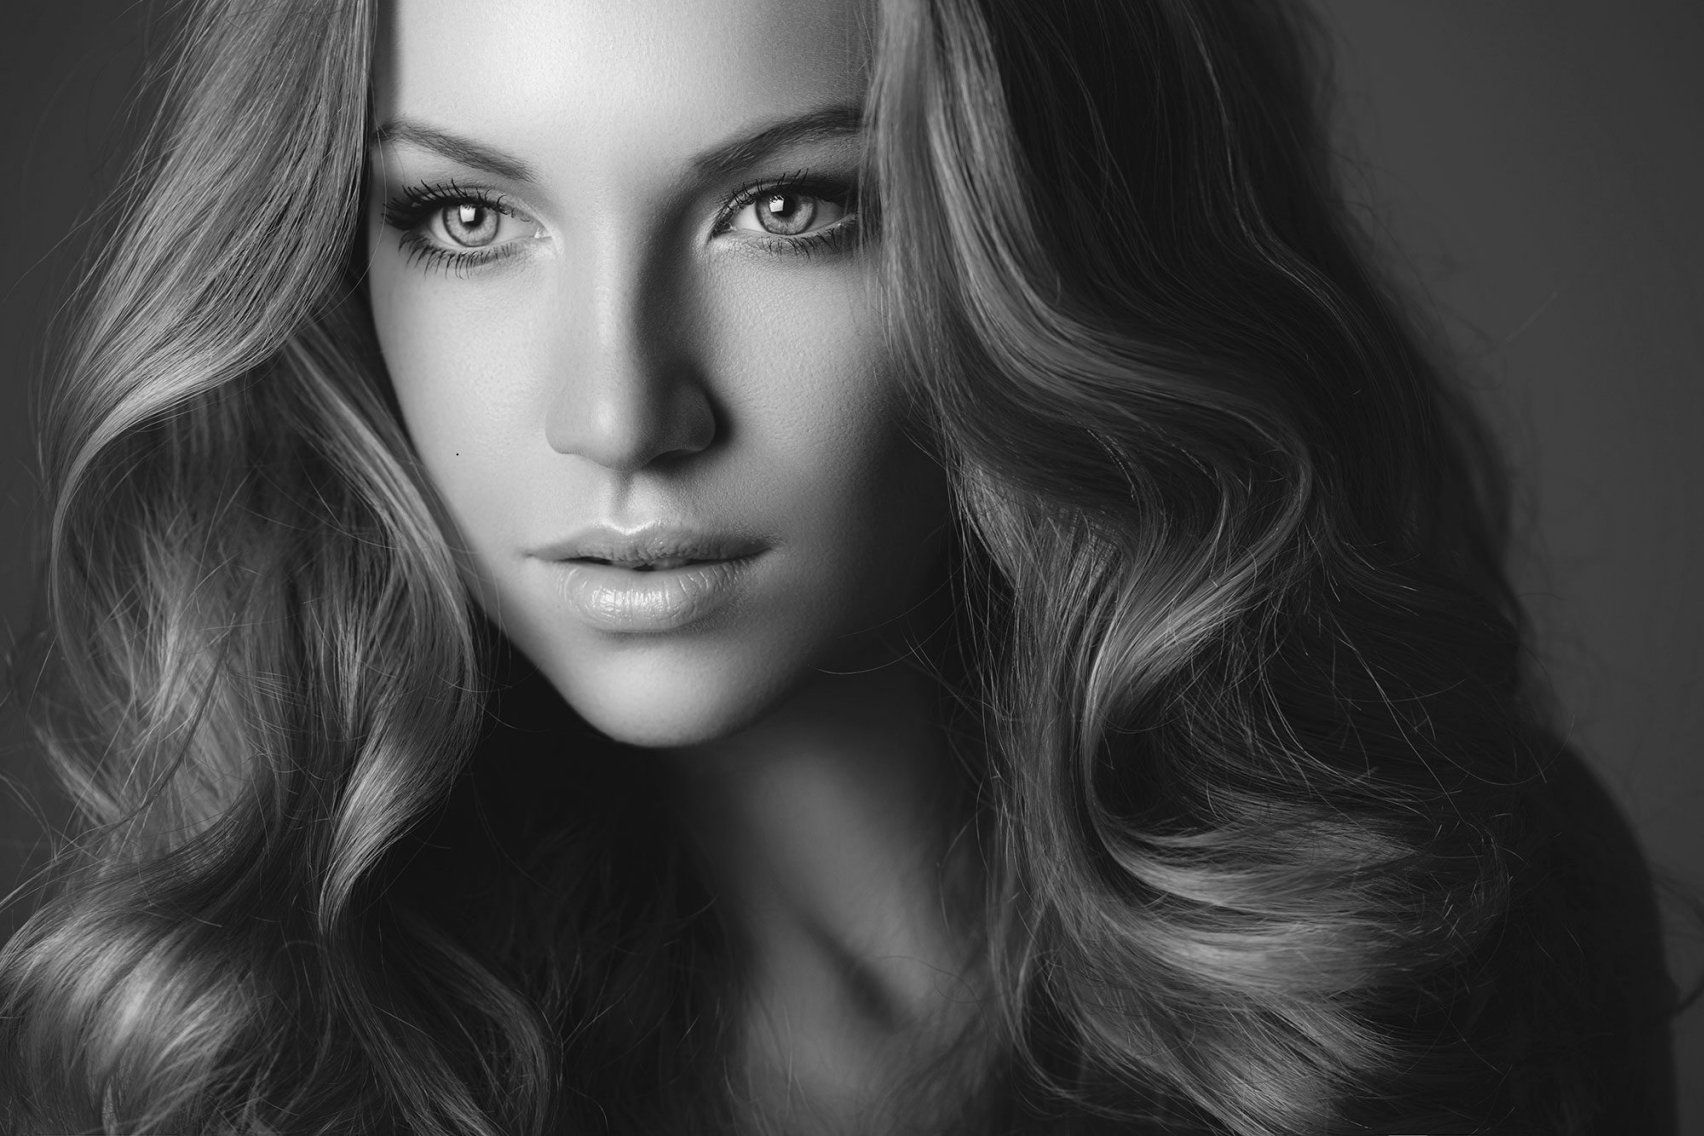 Ladies, our hair is one of the first things that people notice about us, which is why we use so many hair care products and spend thousands of dollars a year...